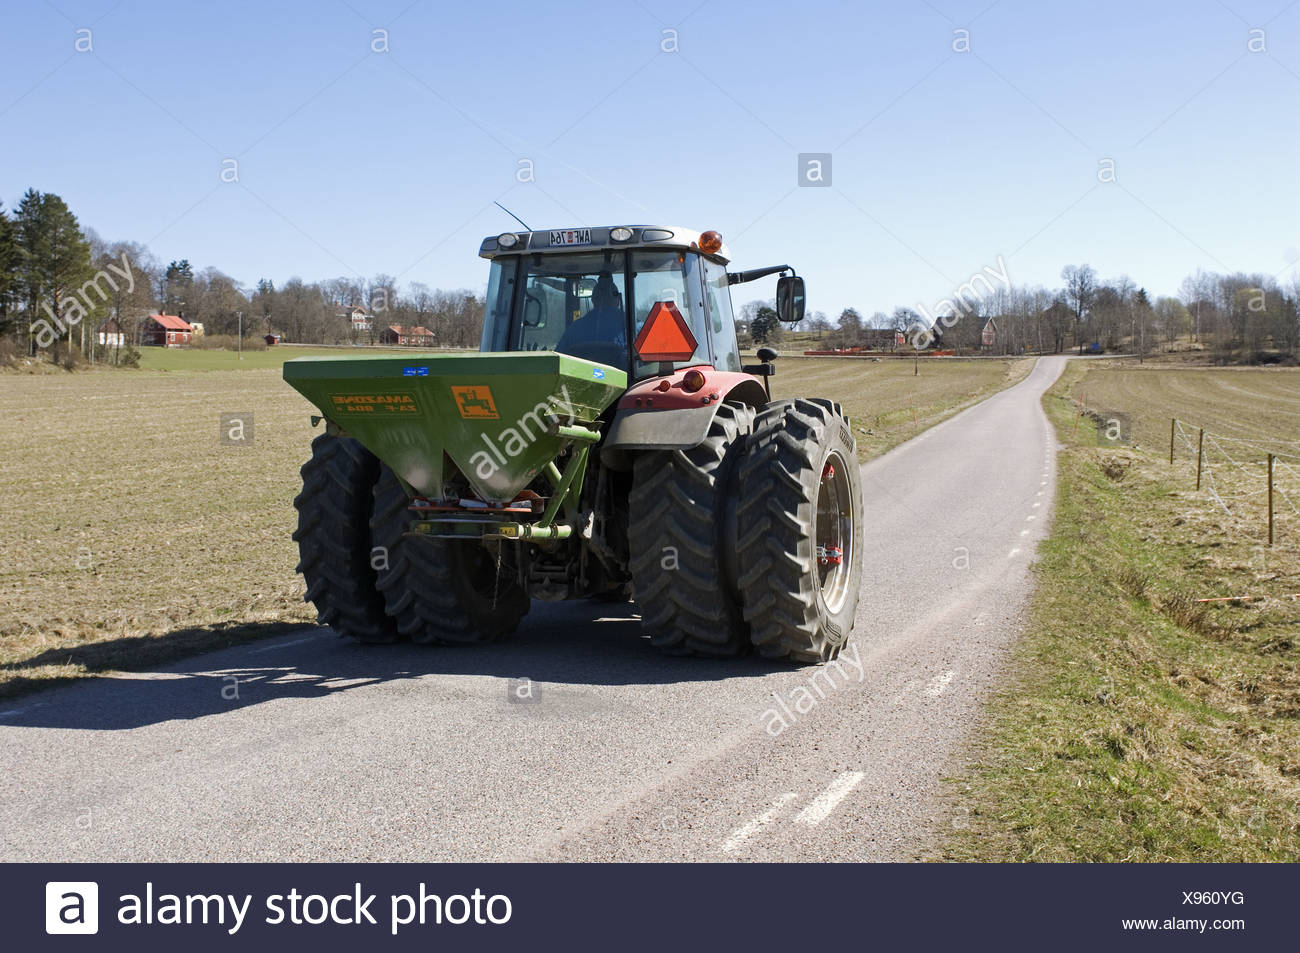 Tractor with Amazone ZA-F fertiliser spreader, driving along rural road, Sweden, spring Stock Photo